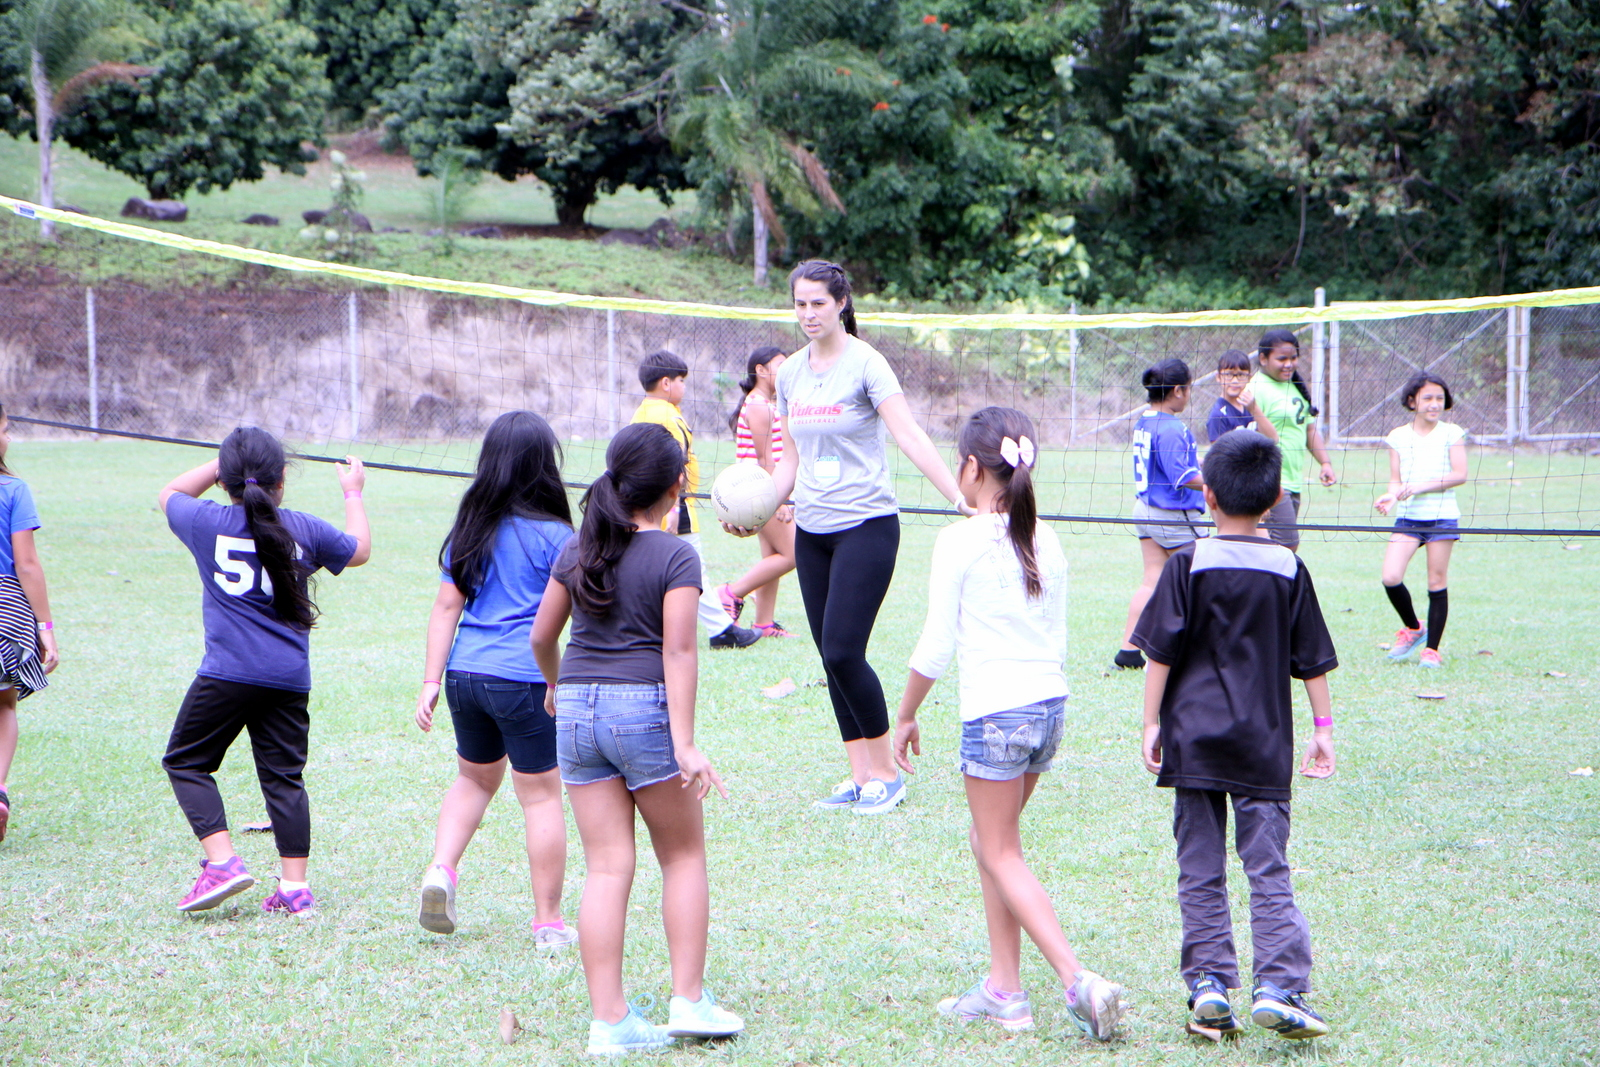 Mariya Heidenrich with school children, volleyball net with lawn court, giving instruction.